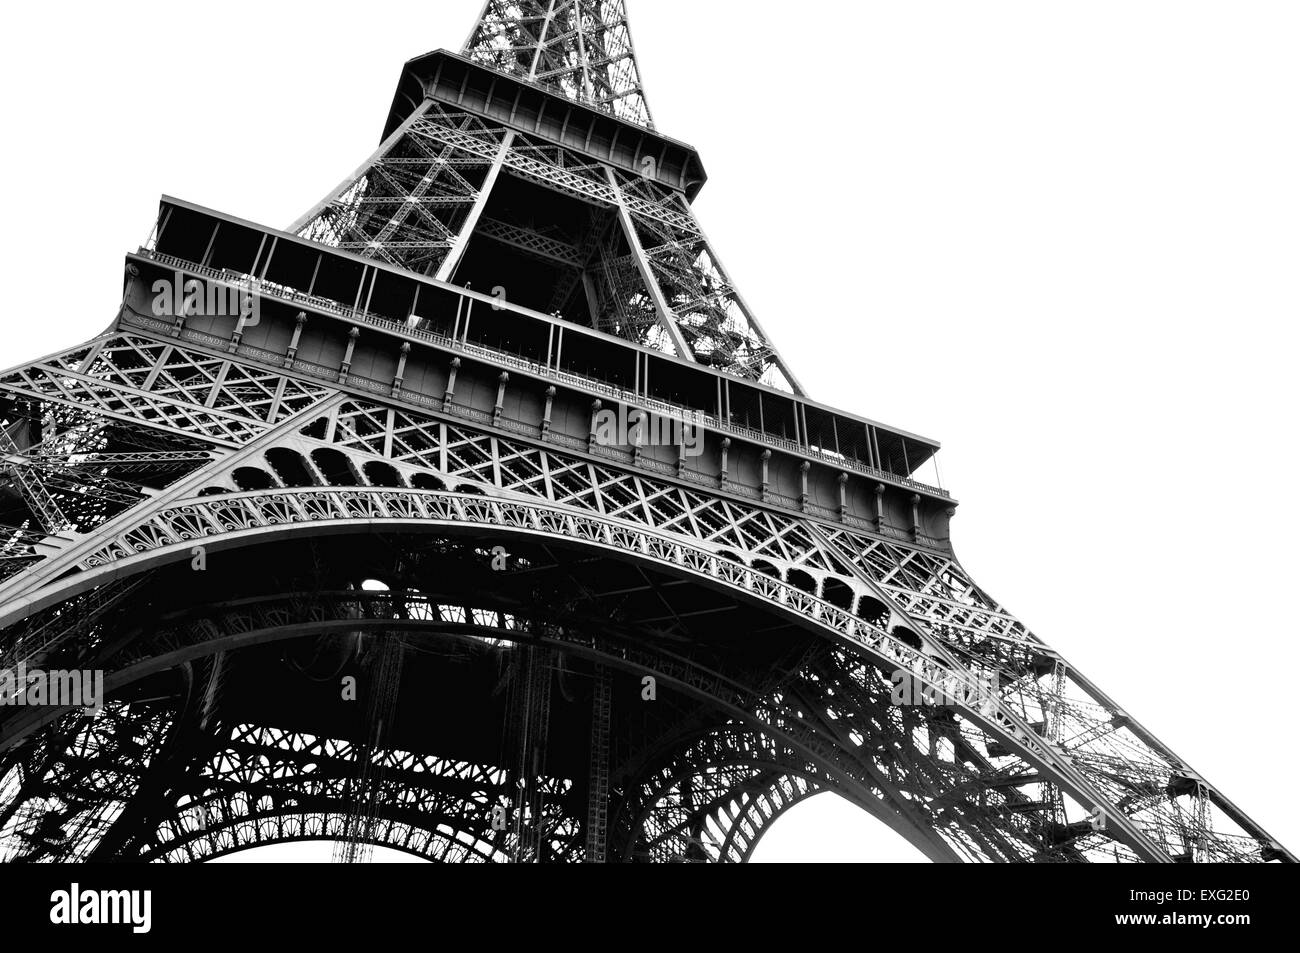 Eiffel tower in black and white captured from the ground level - Stock Image